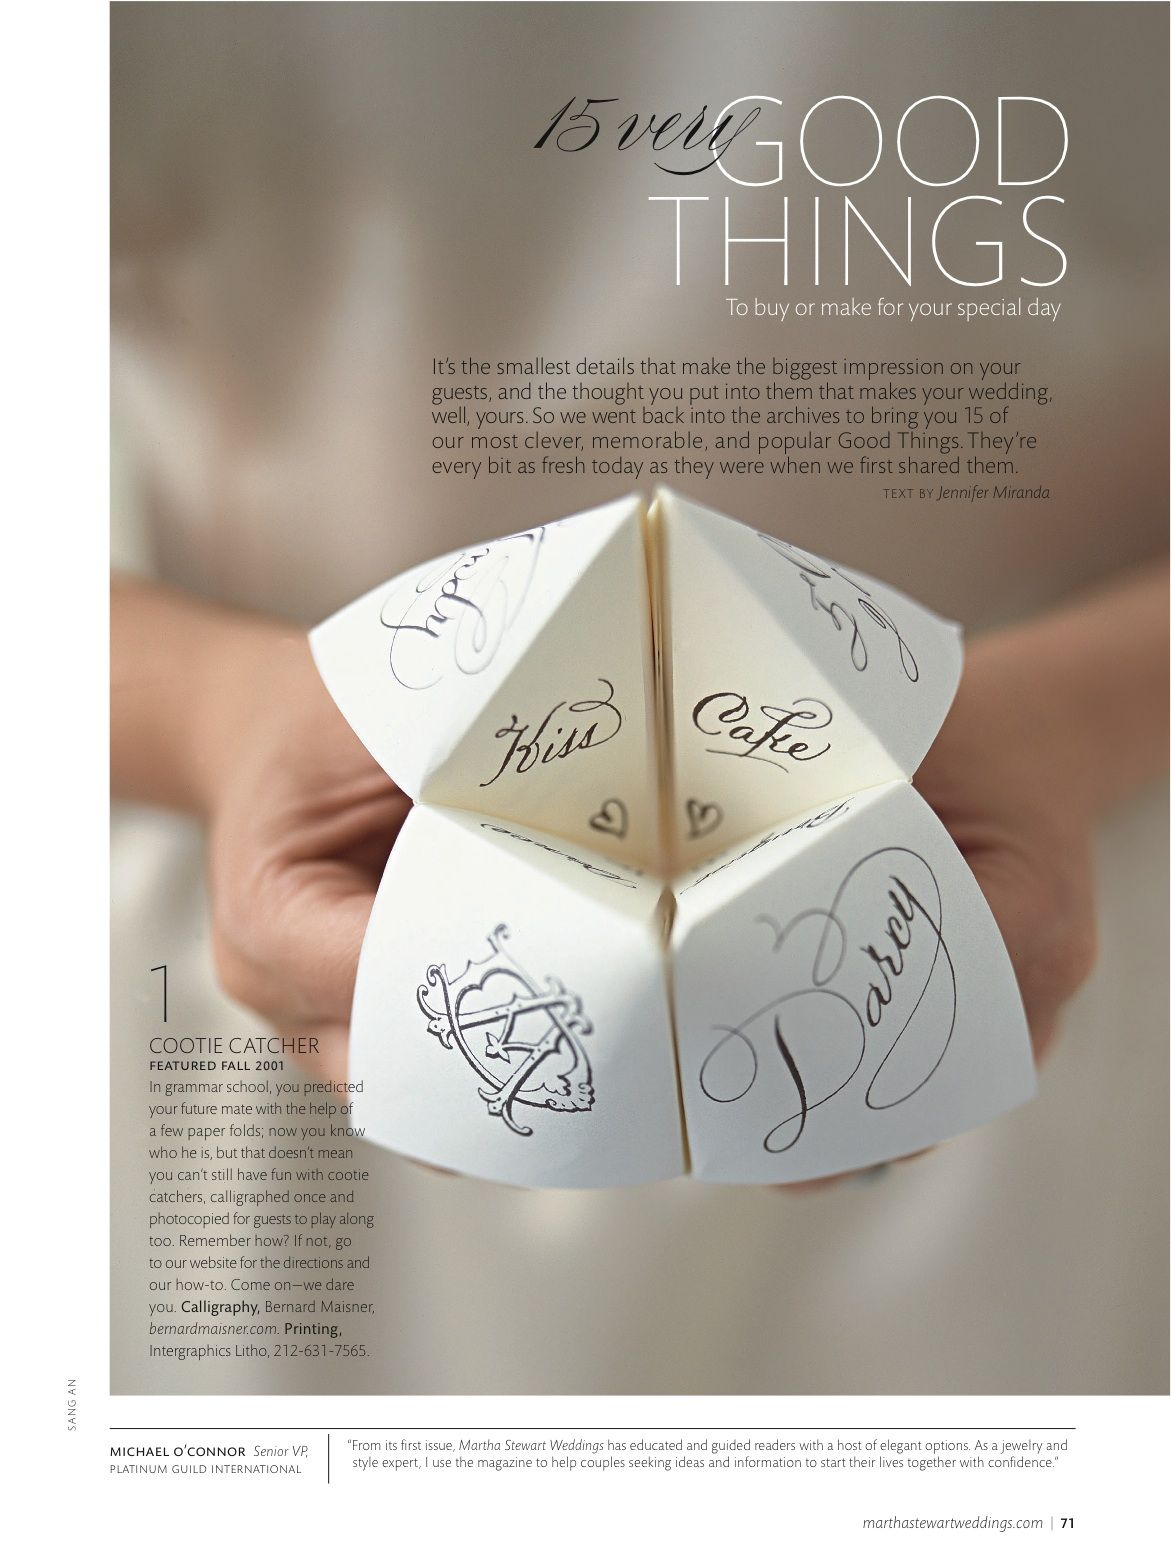 Creative Wedding games and favors